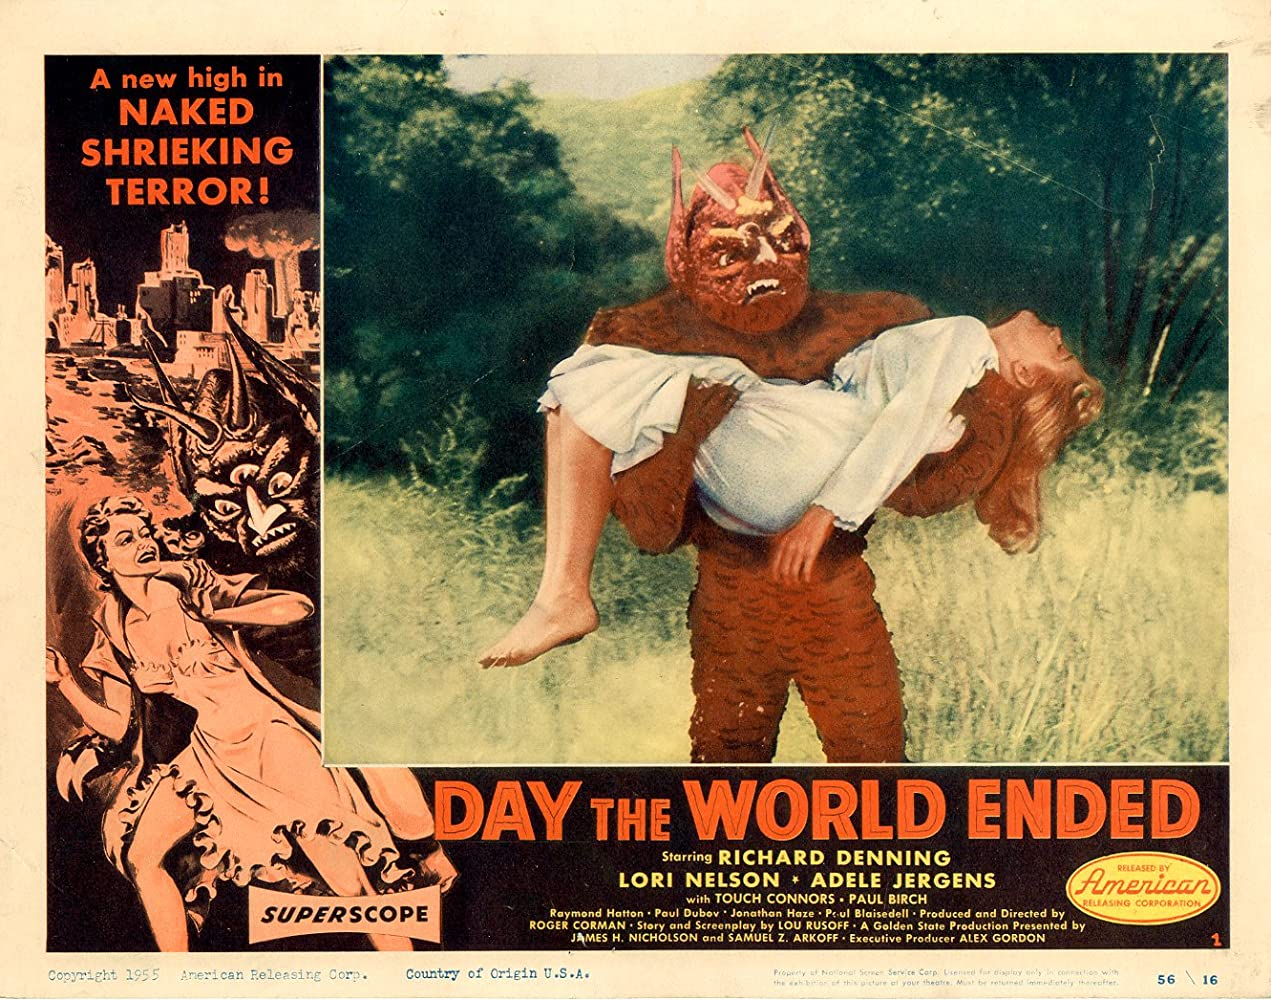 Paul Blaisdell and Lori Nelson in Day the World Ended (1955)